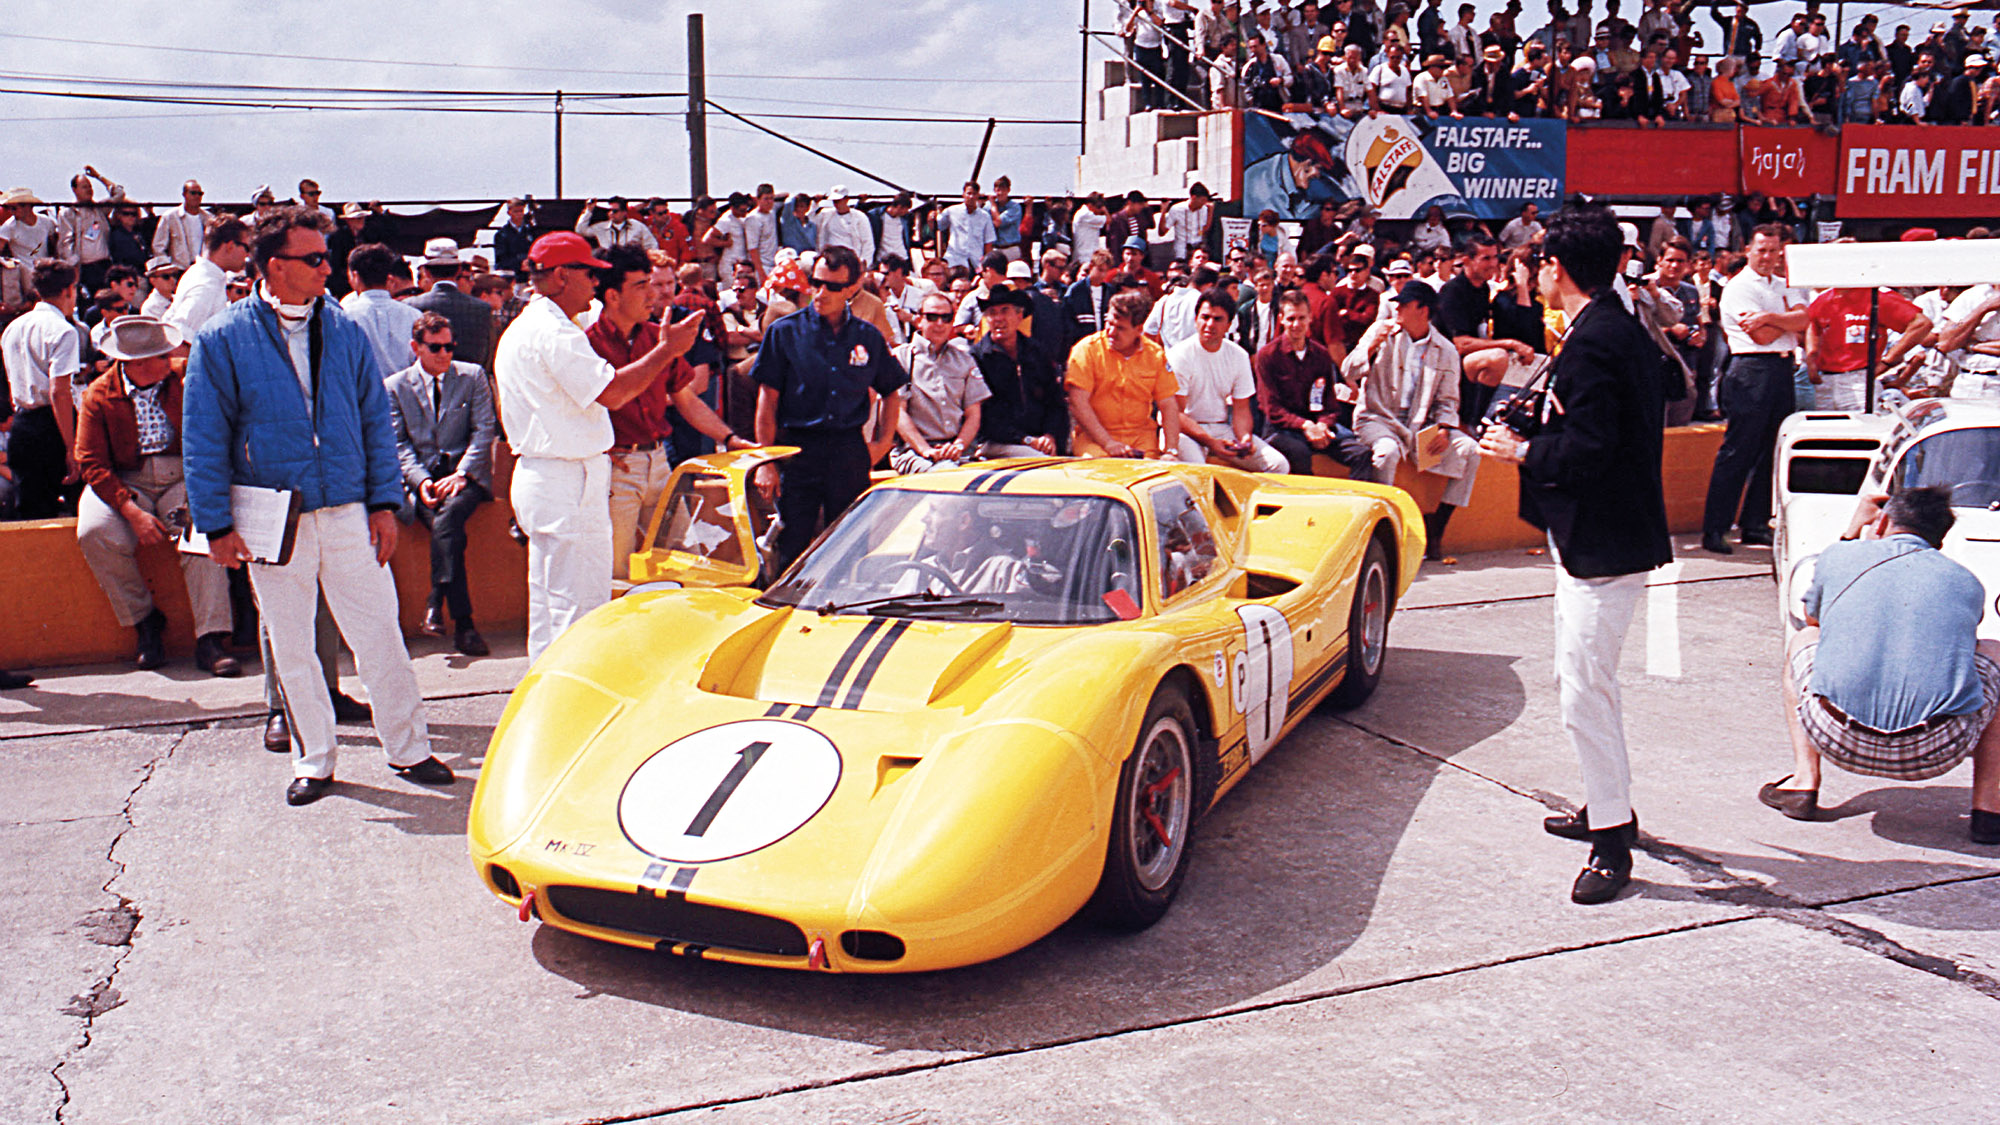 Ford MkIV at Le Mans in 1967